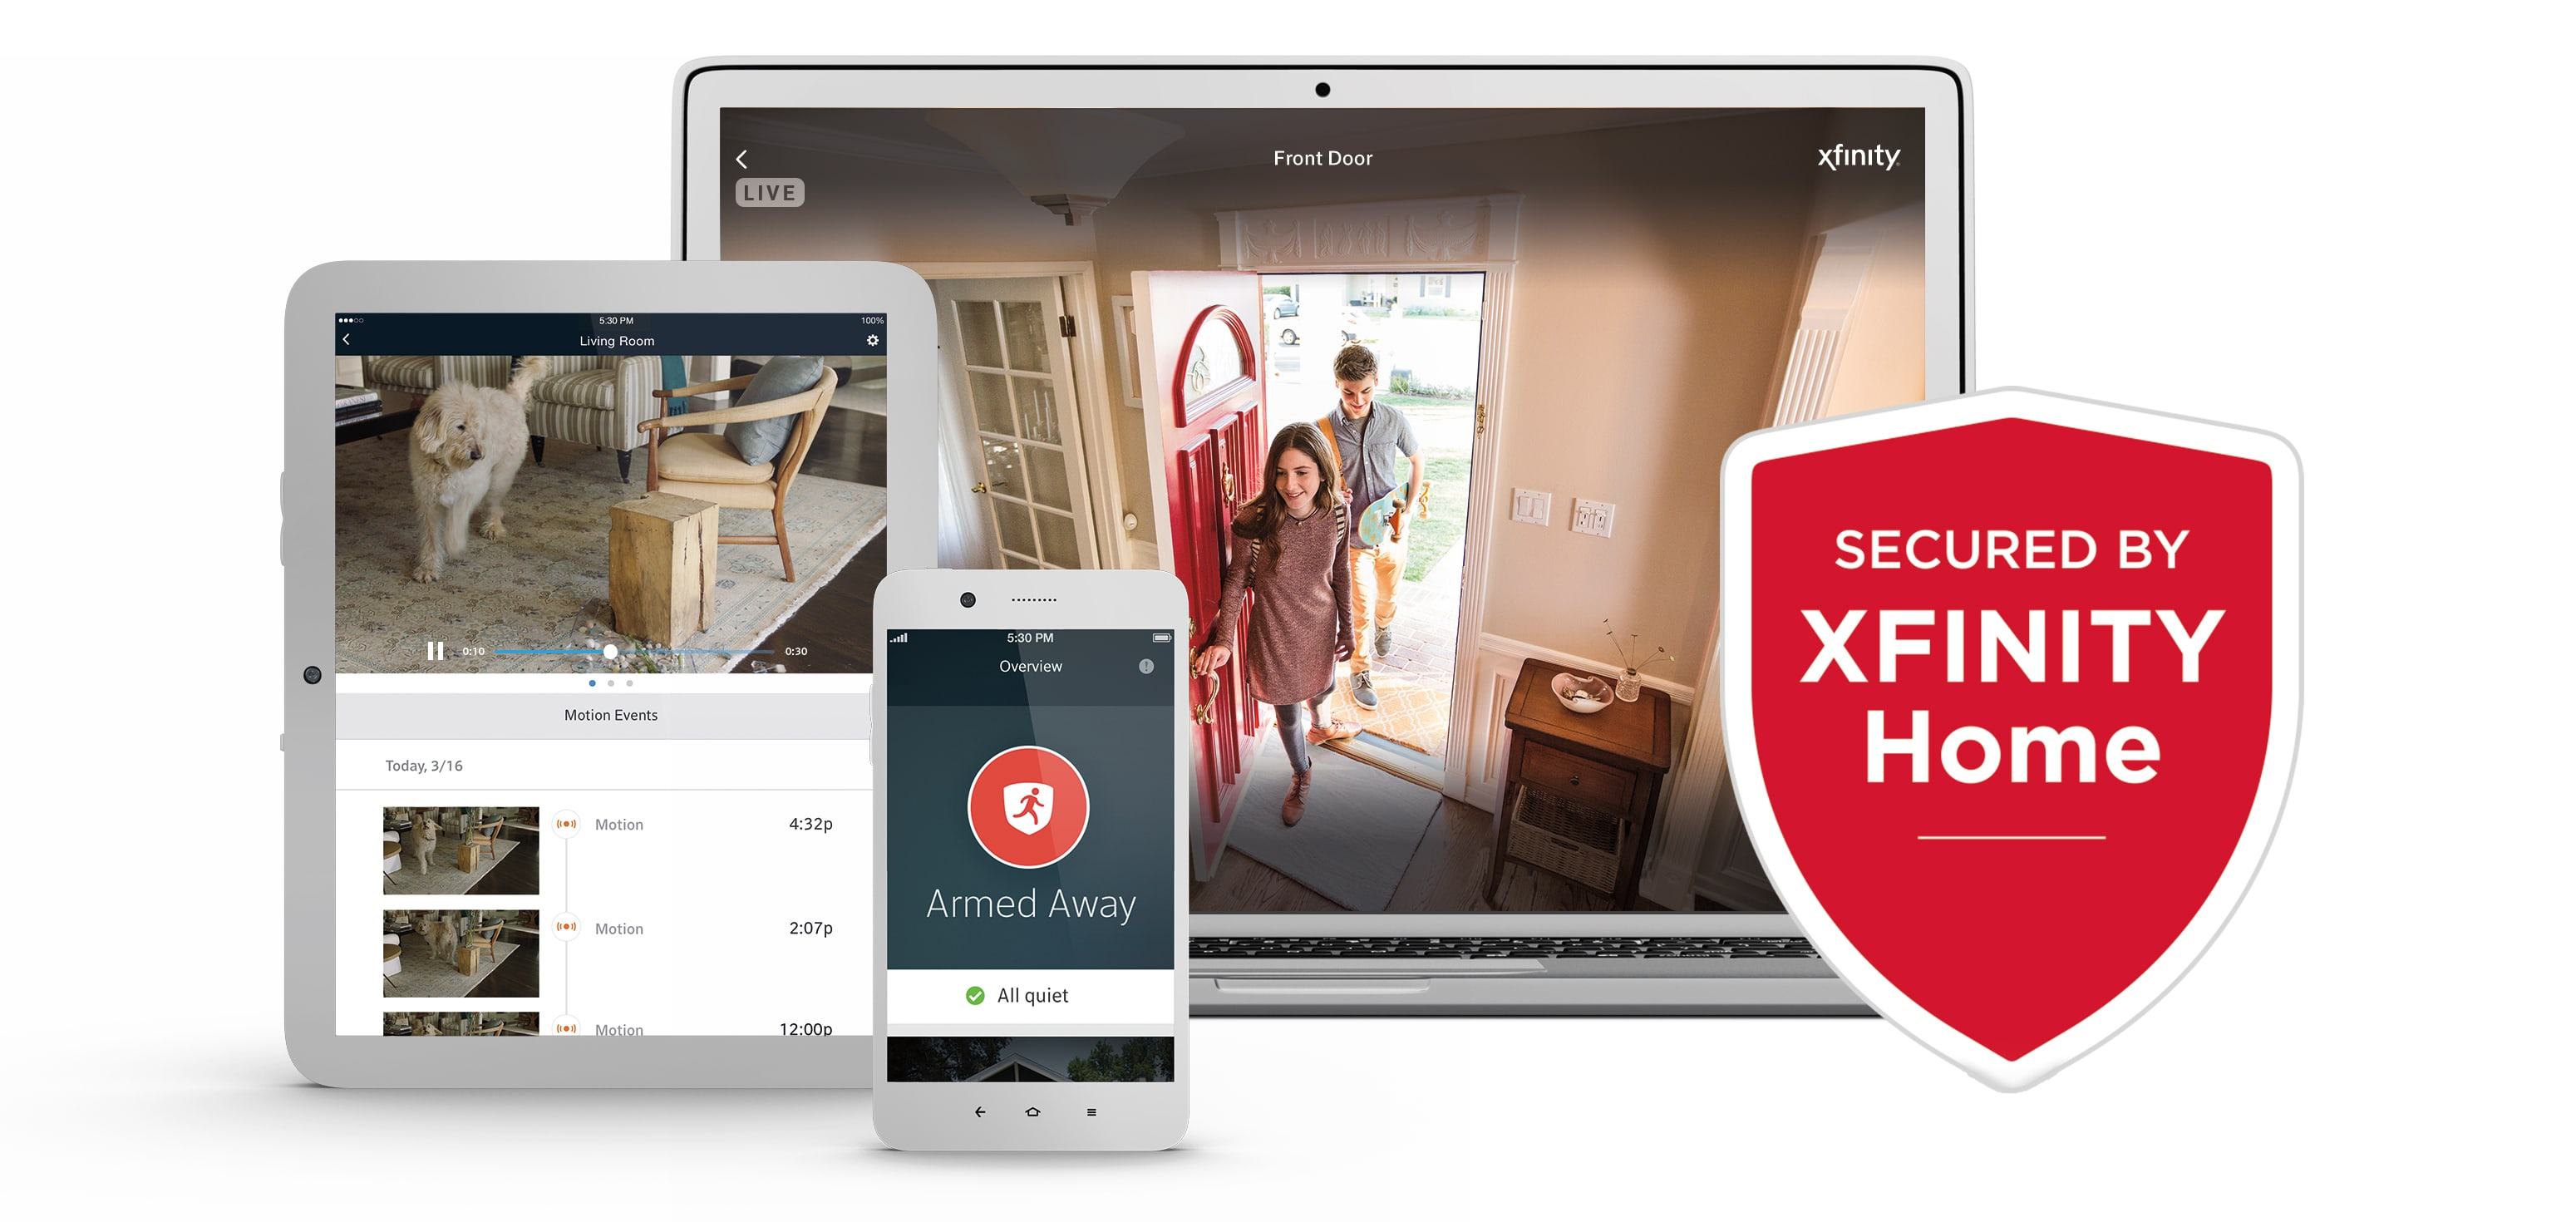 XFINITY Home App on a tablet